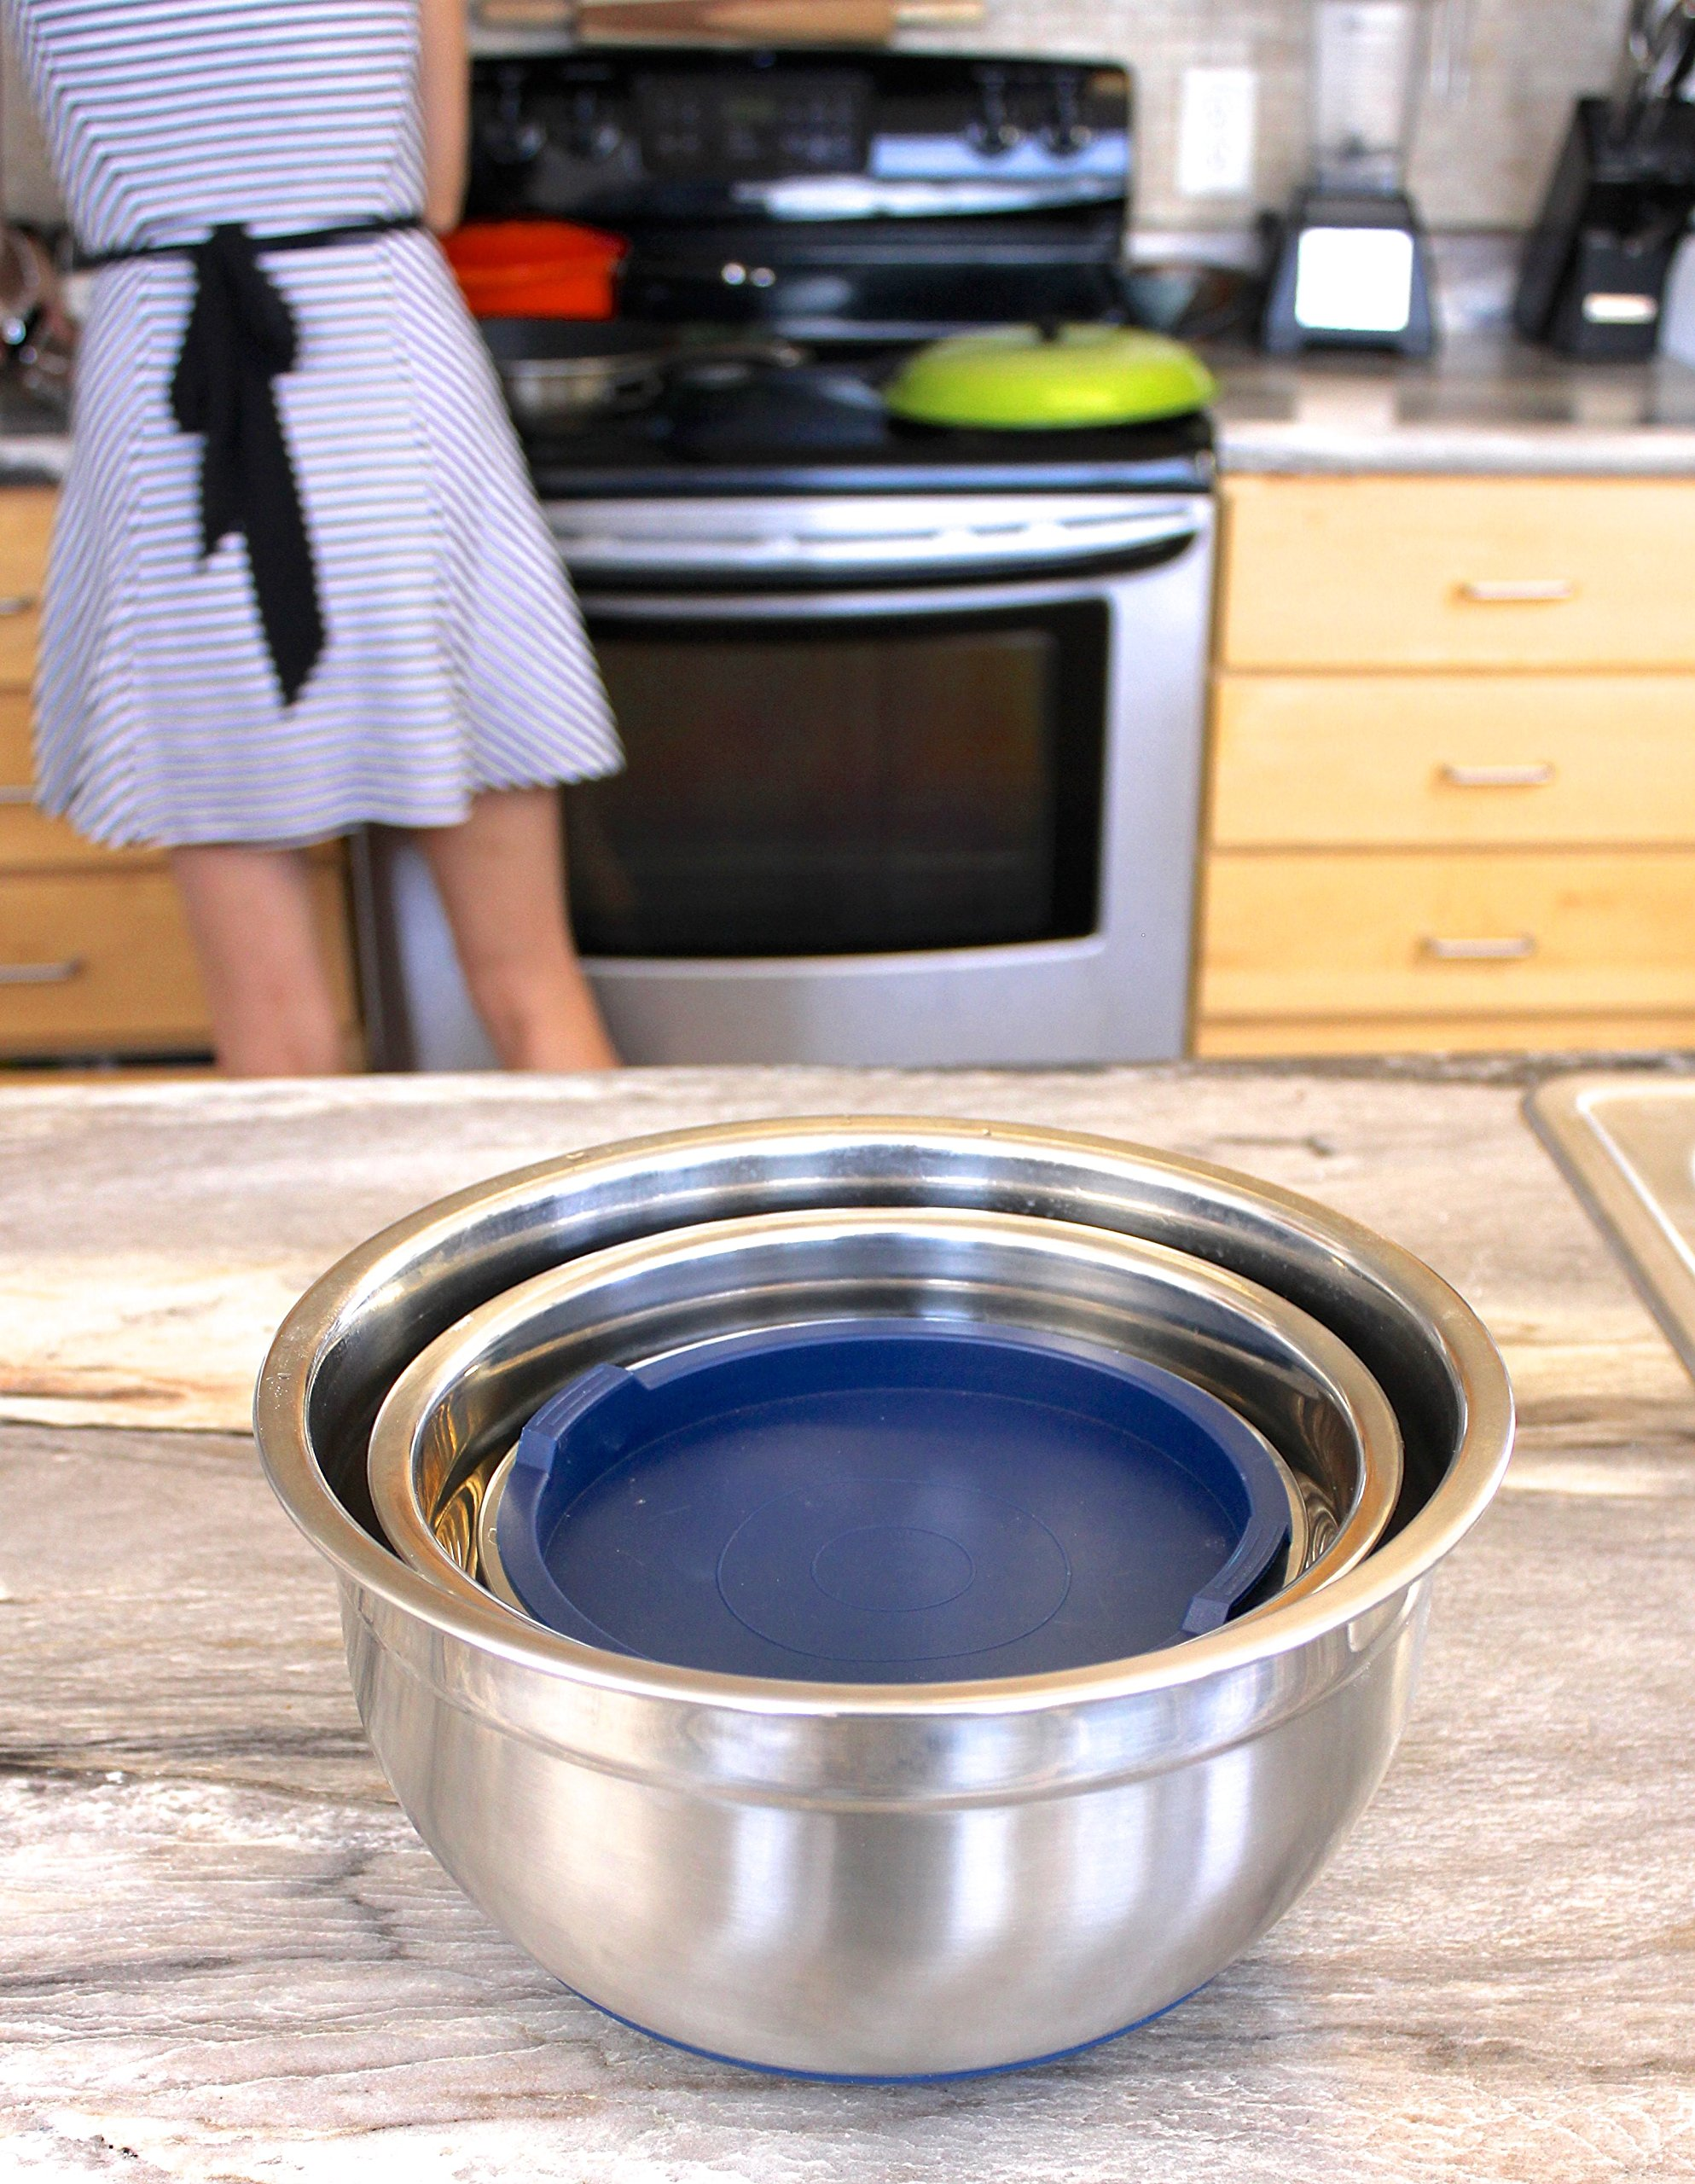 Fitzroy and Fox Non-Slip Stainless Steel Mixing Bowls with Lids, Set of 3, Blue by Fitzroy and Fox (Image #5)